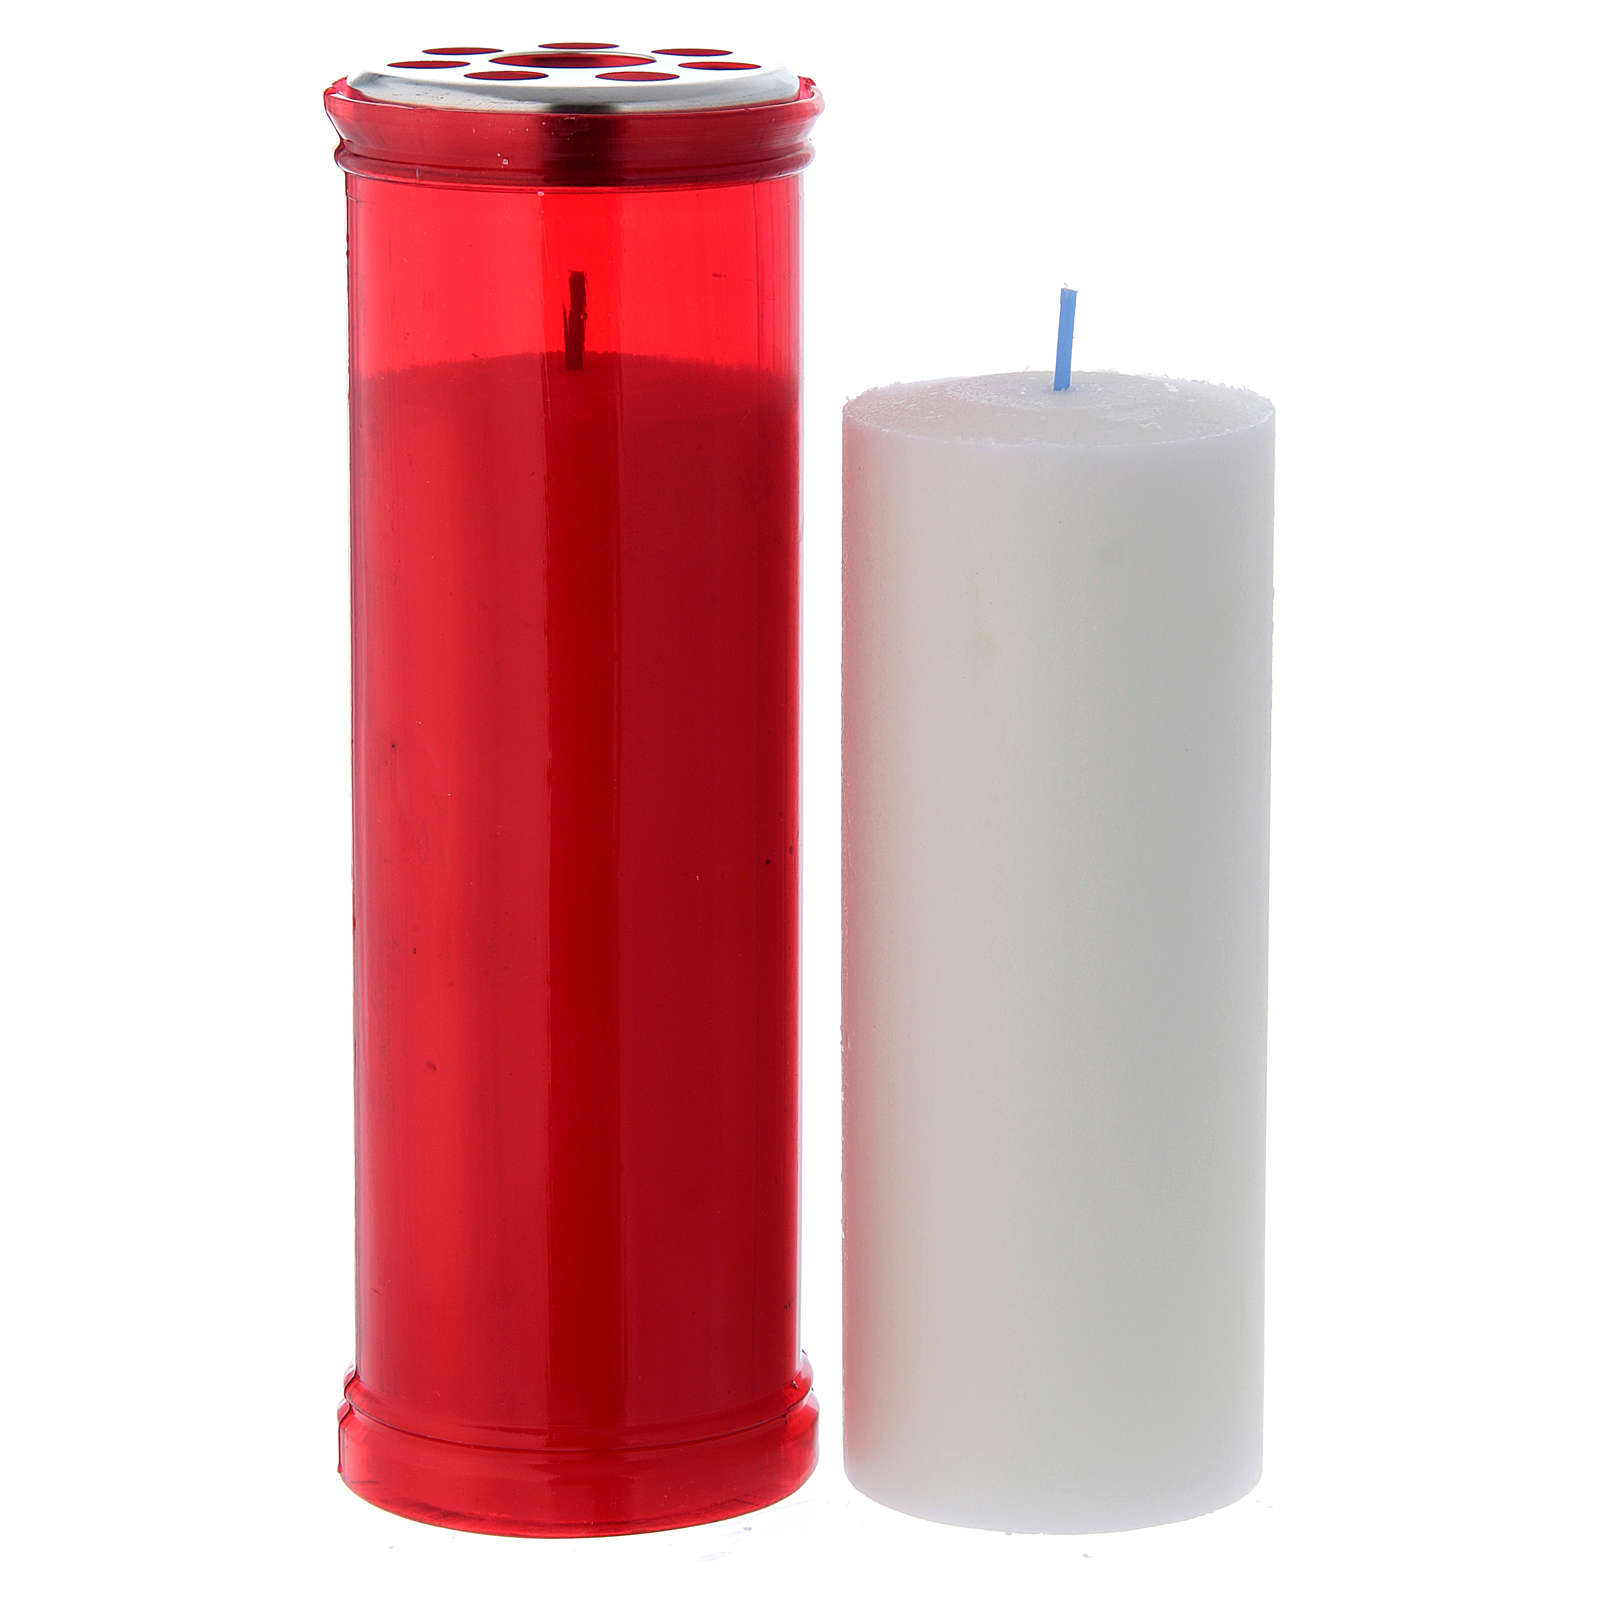 T50 red votive candle with white wax 3